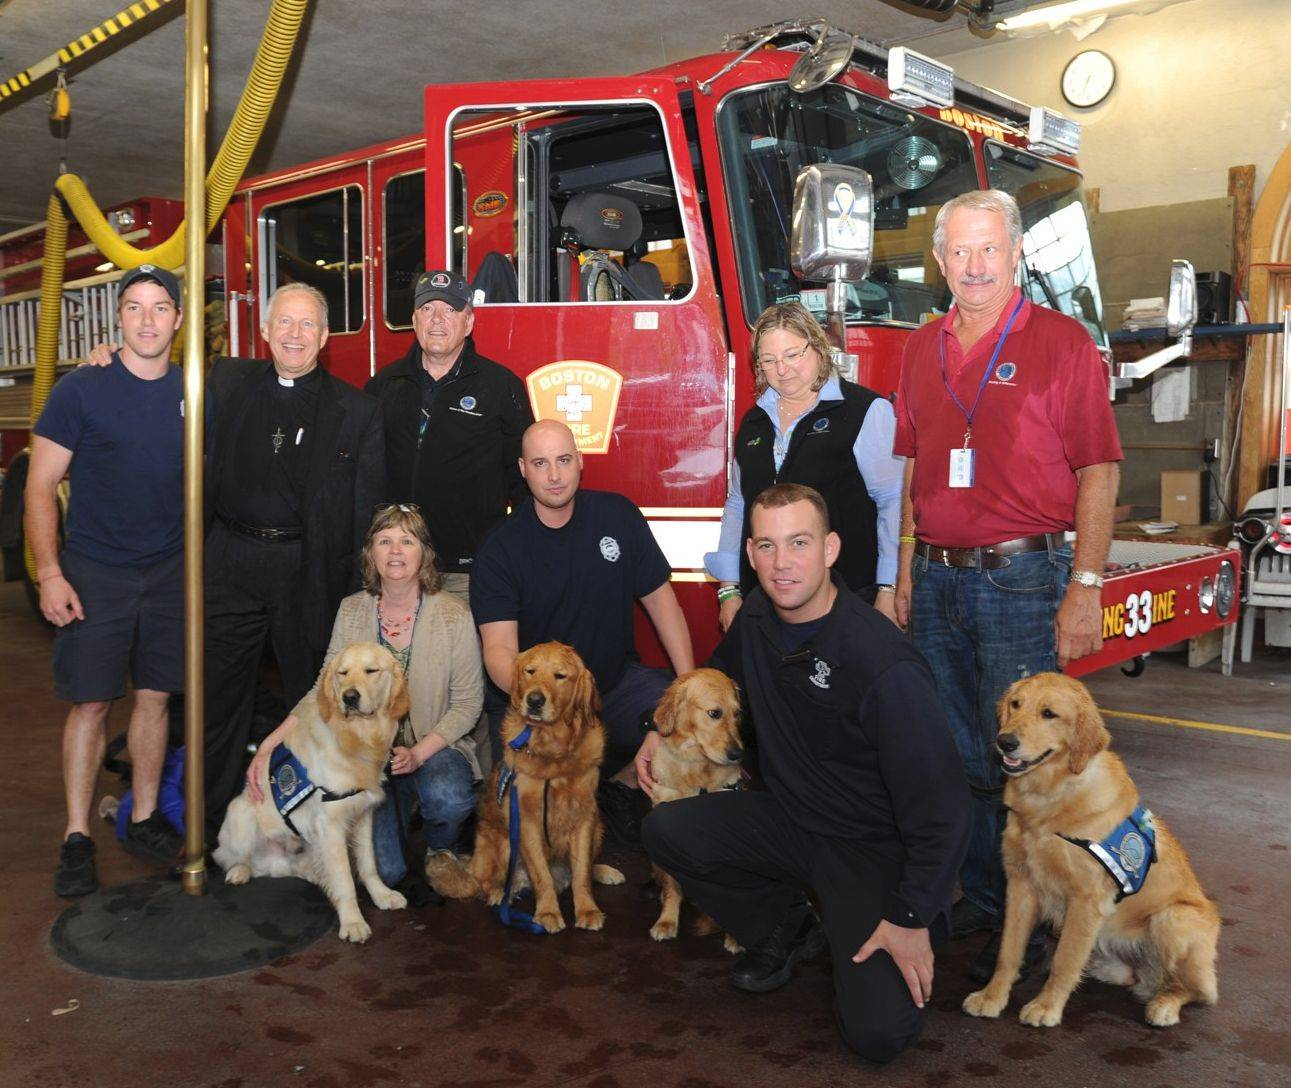 Lutheran pastor Ingo Dutzmann and members of the Addison-based K-9 Dog Ministry visit Boston Engine 33 firefighters and first responders to the recent marathon bombings with comfort dogs Moses, Luther, Ruthie and Susie.